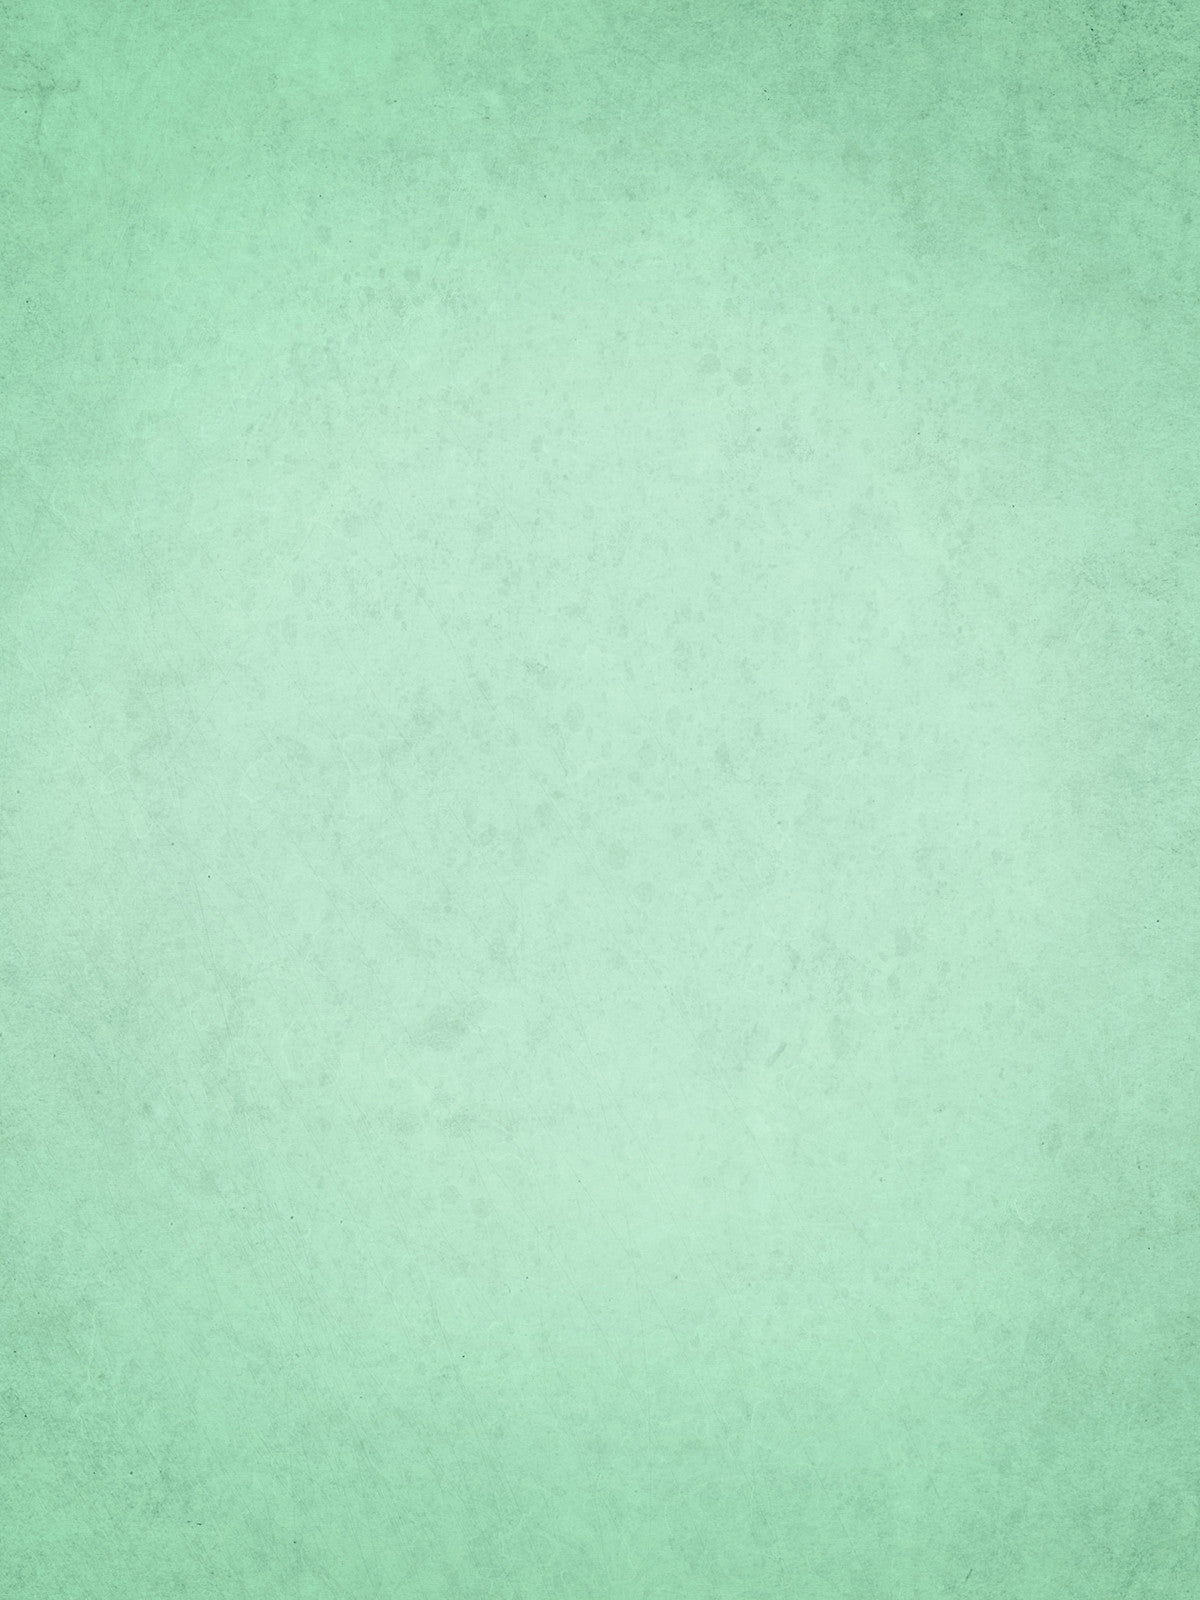 Seafoam Solid Texture Photography Background / 9047